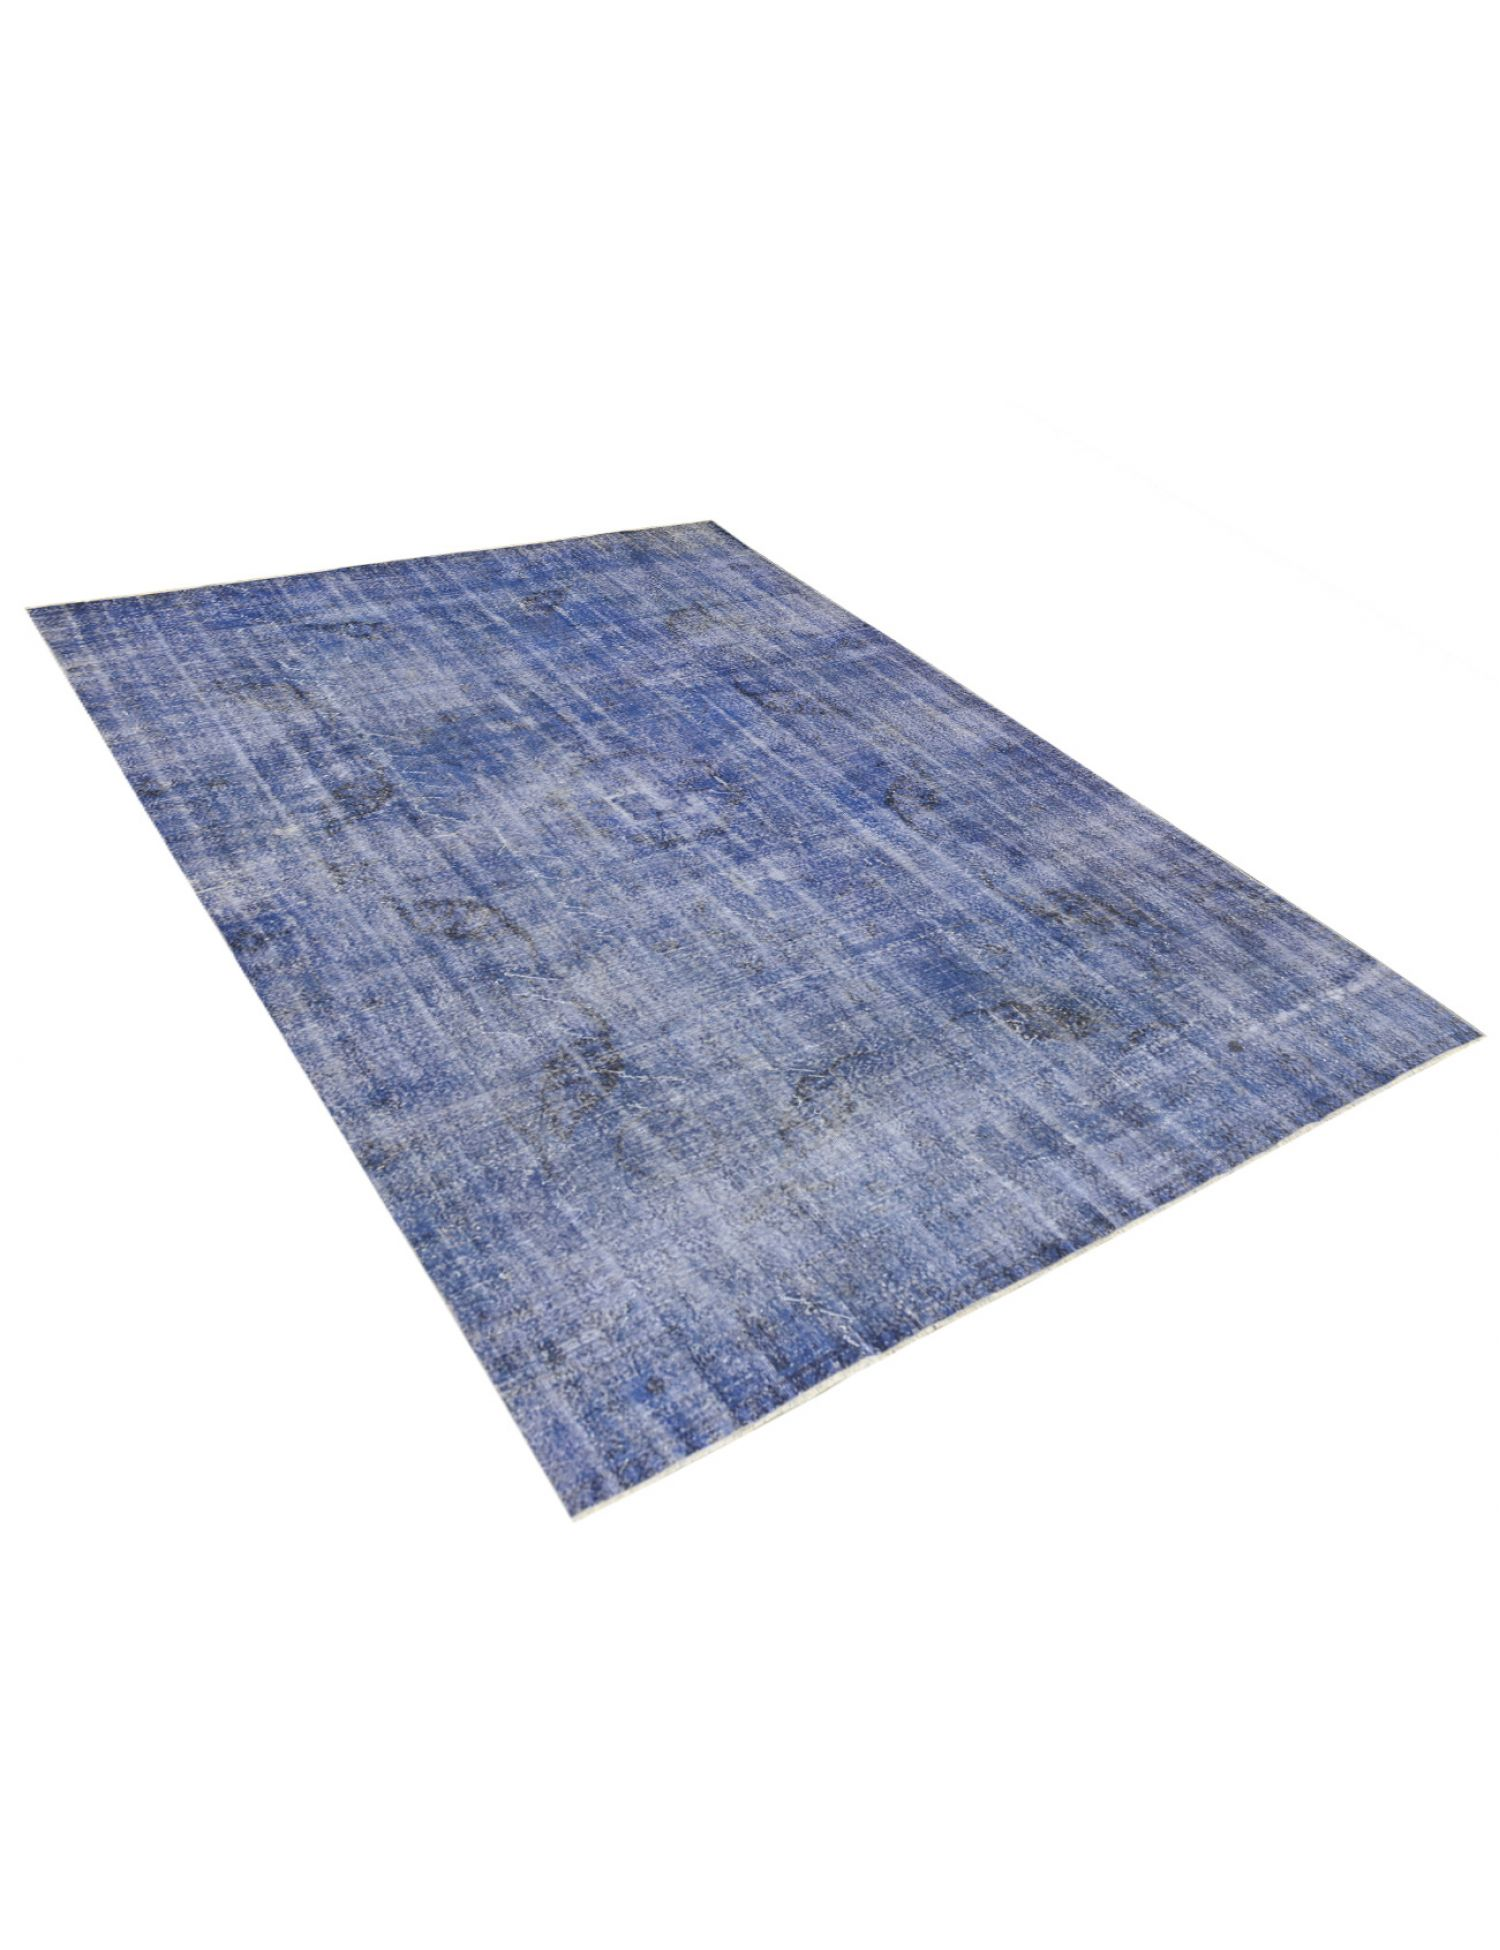 Vintage Carpet  blue <br/>350 x 226 cm